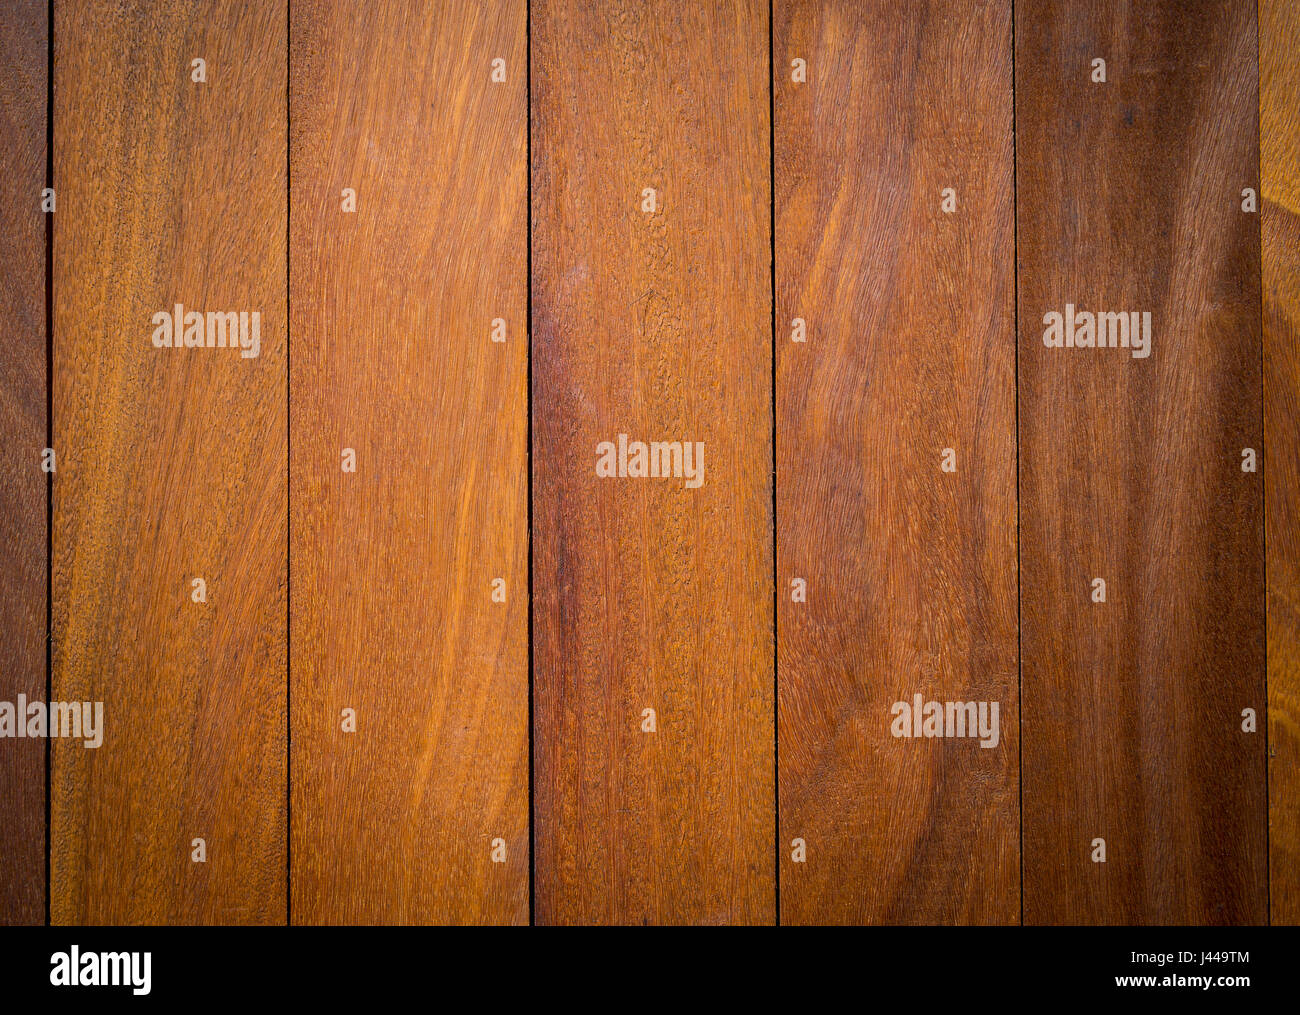 Wood panel background in smooth brown grain - Stock Image